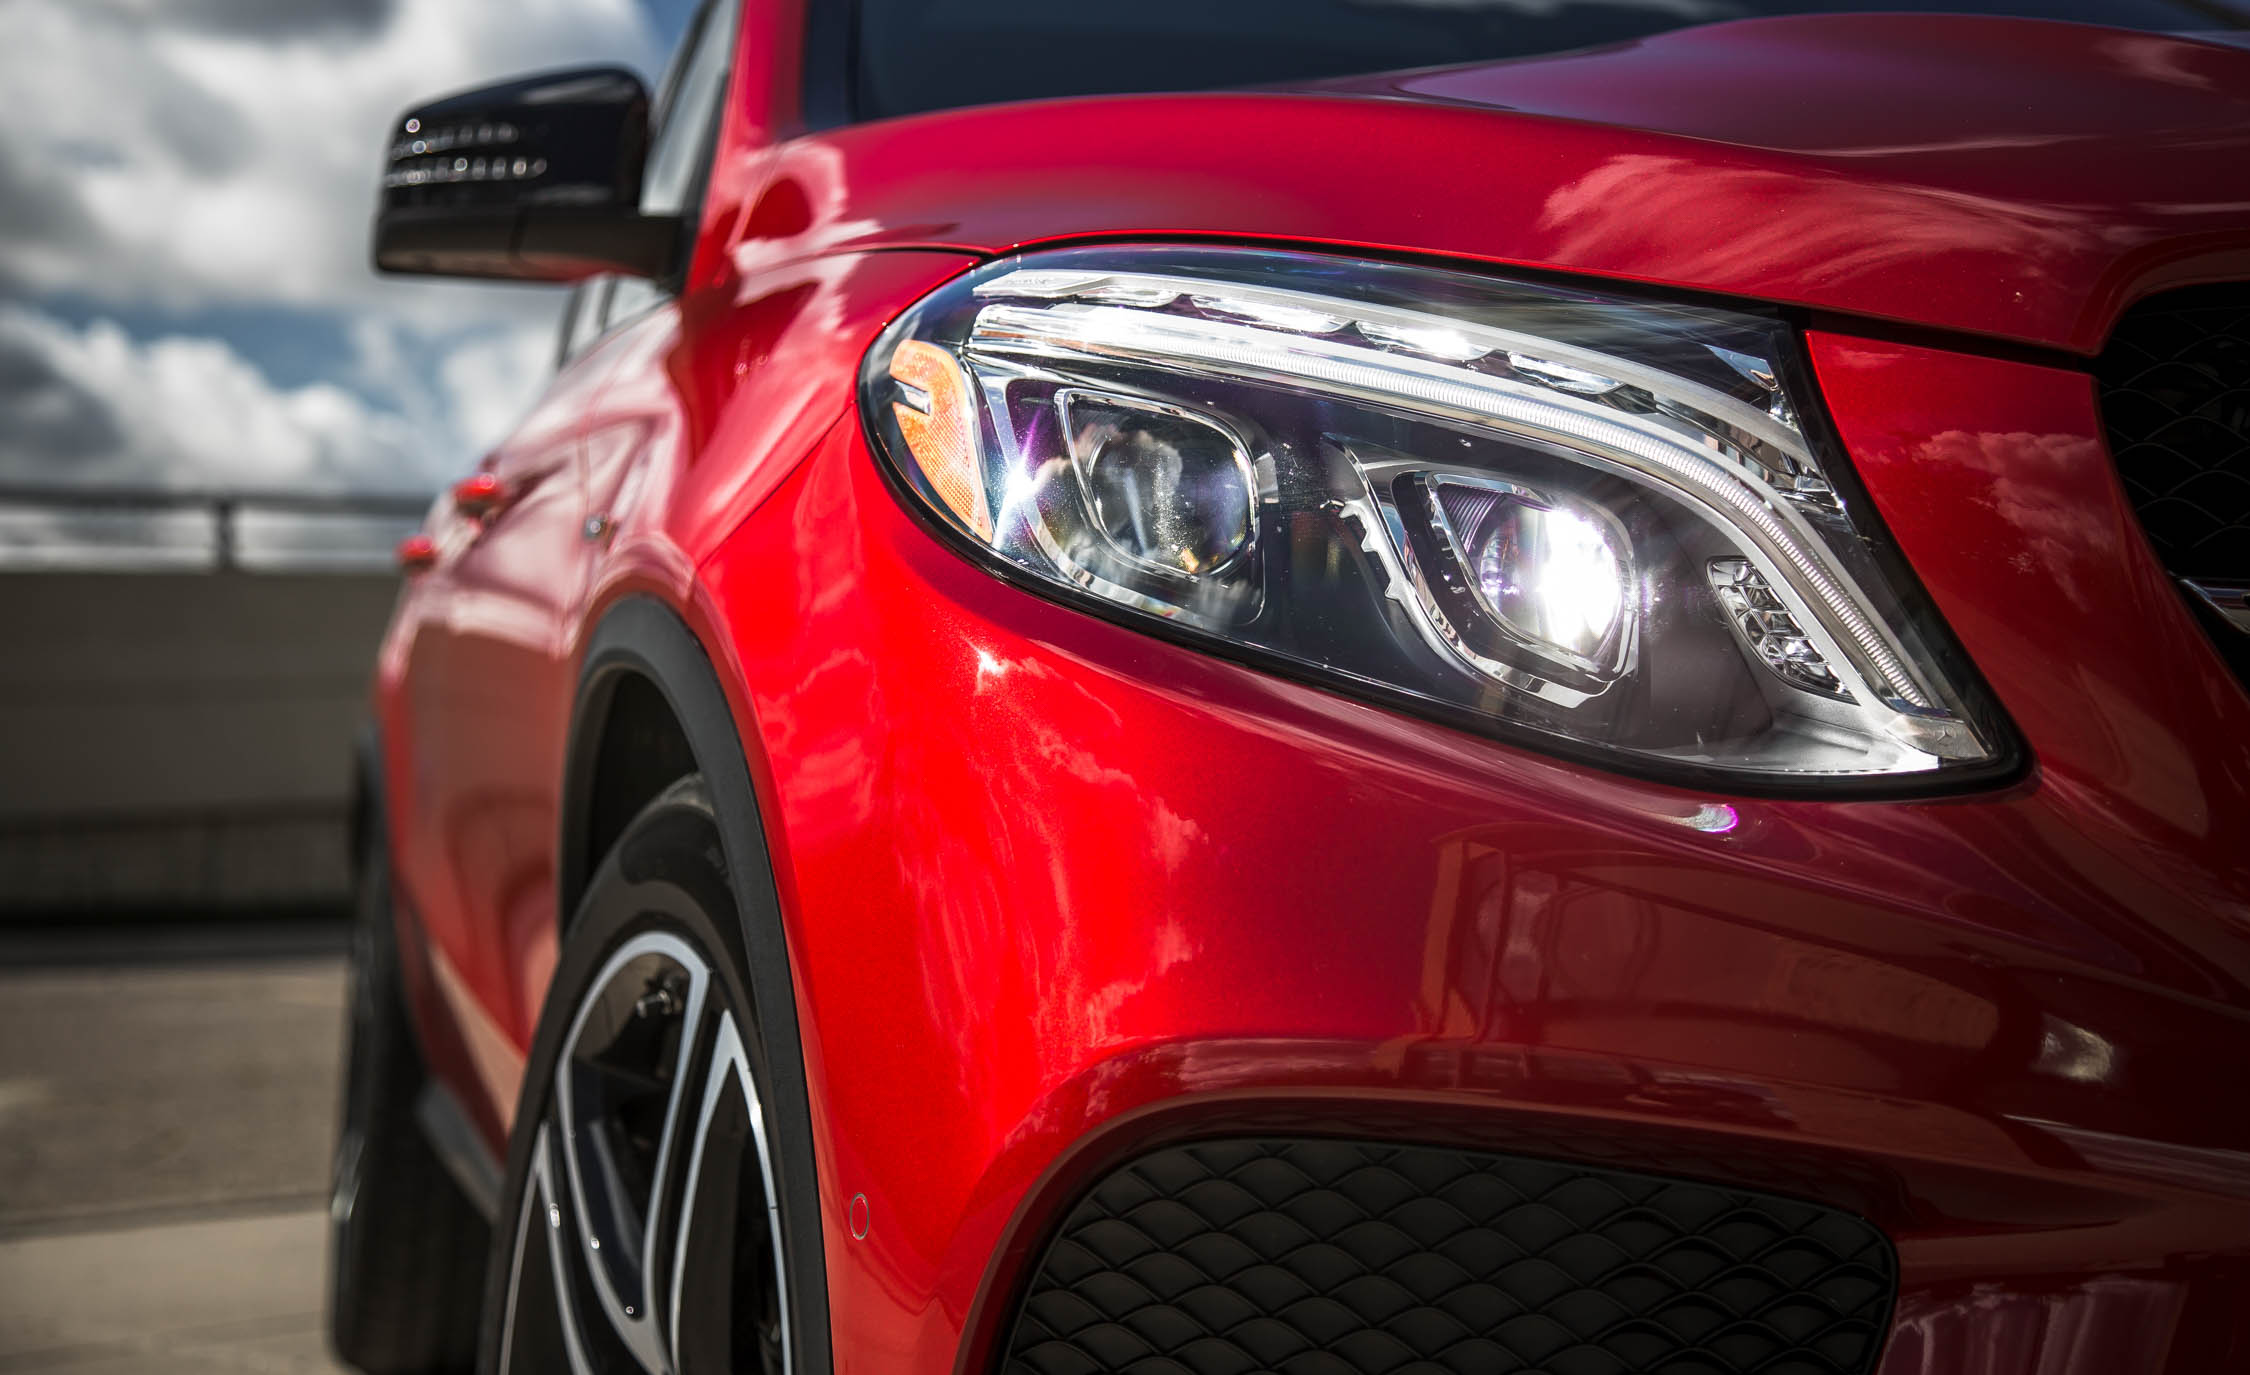 2016 Mercedes-Benz GLE450 AMG Coupe Exterior Headlight